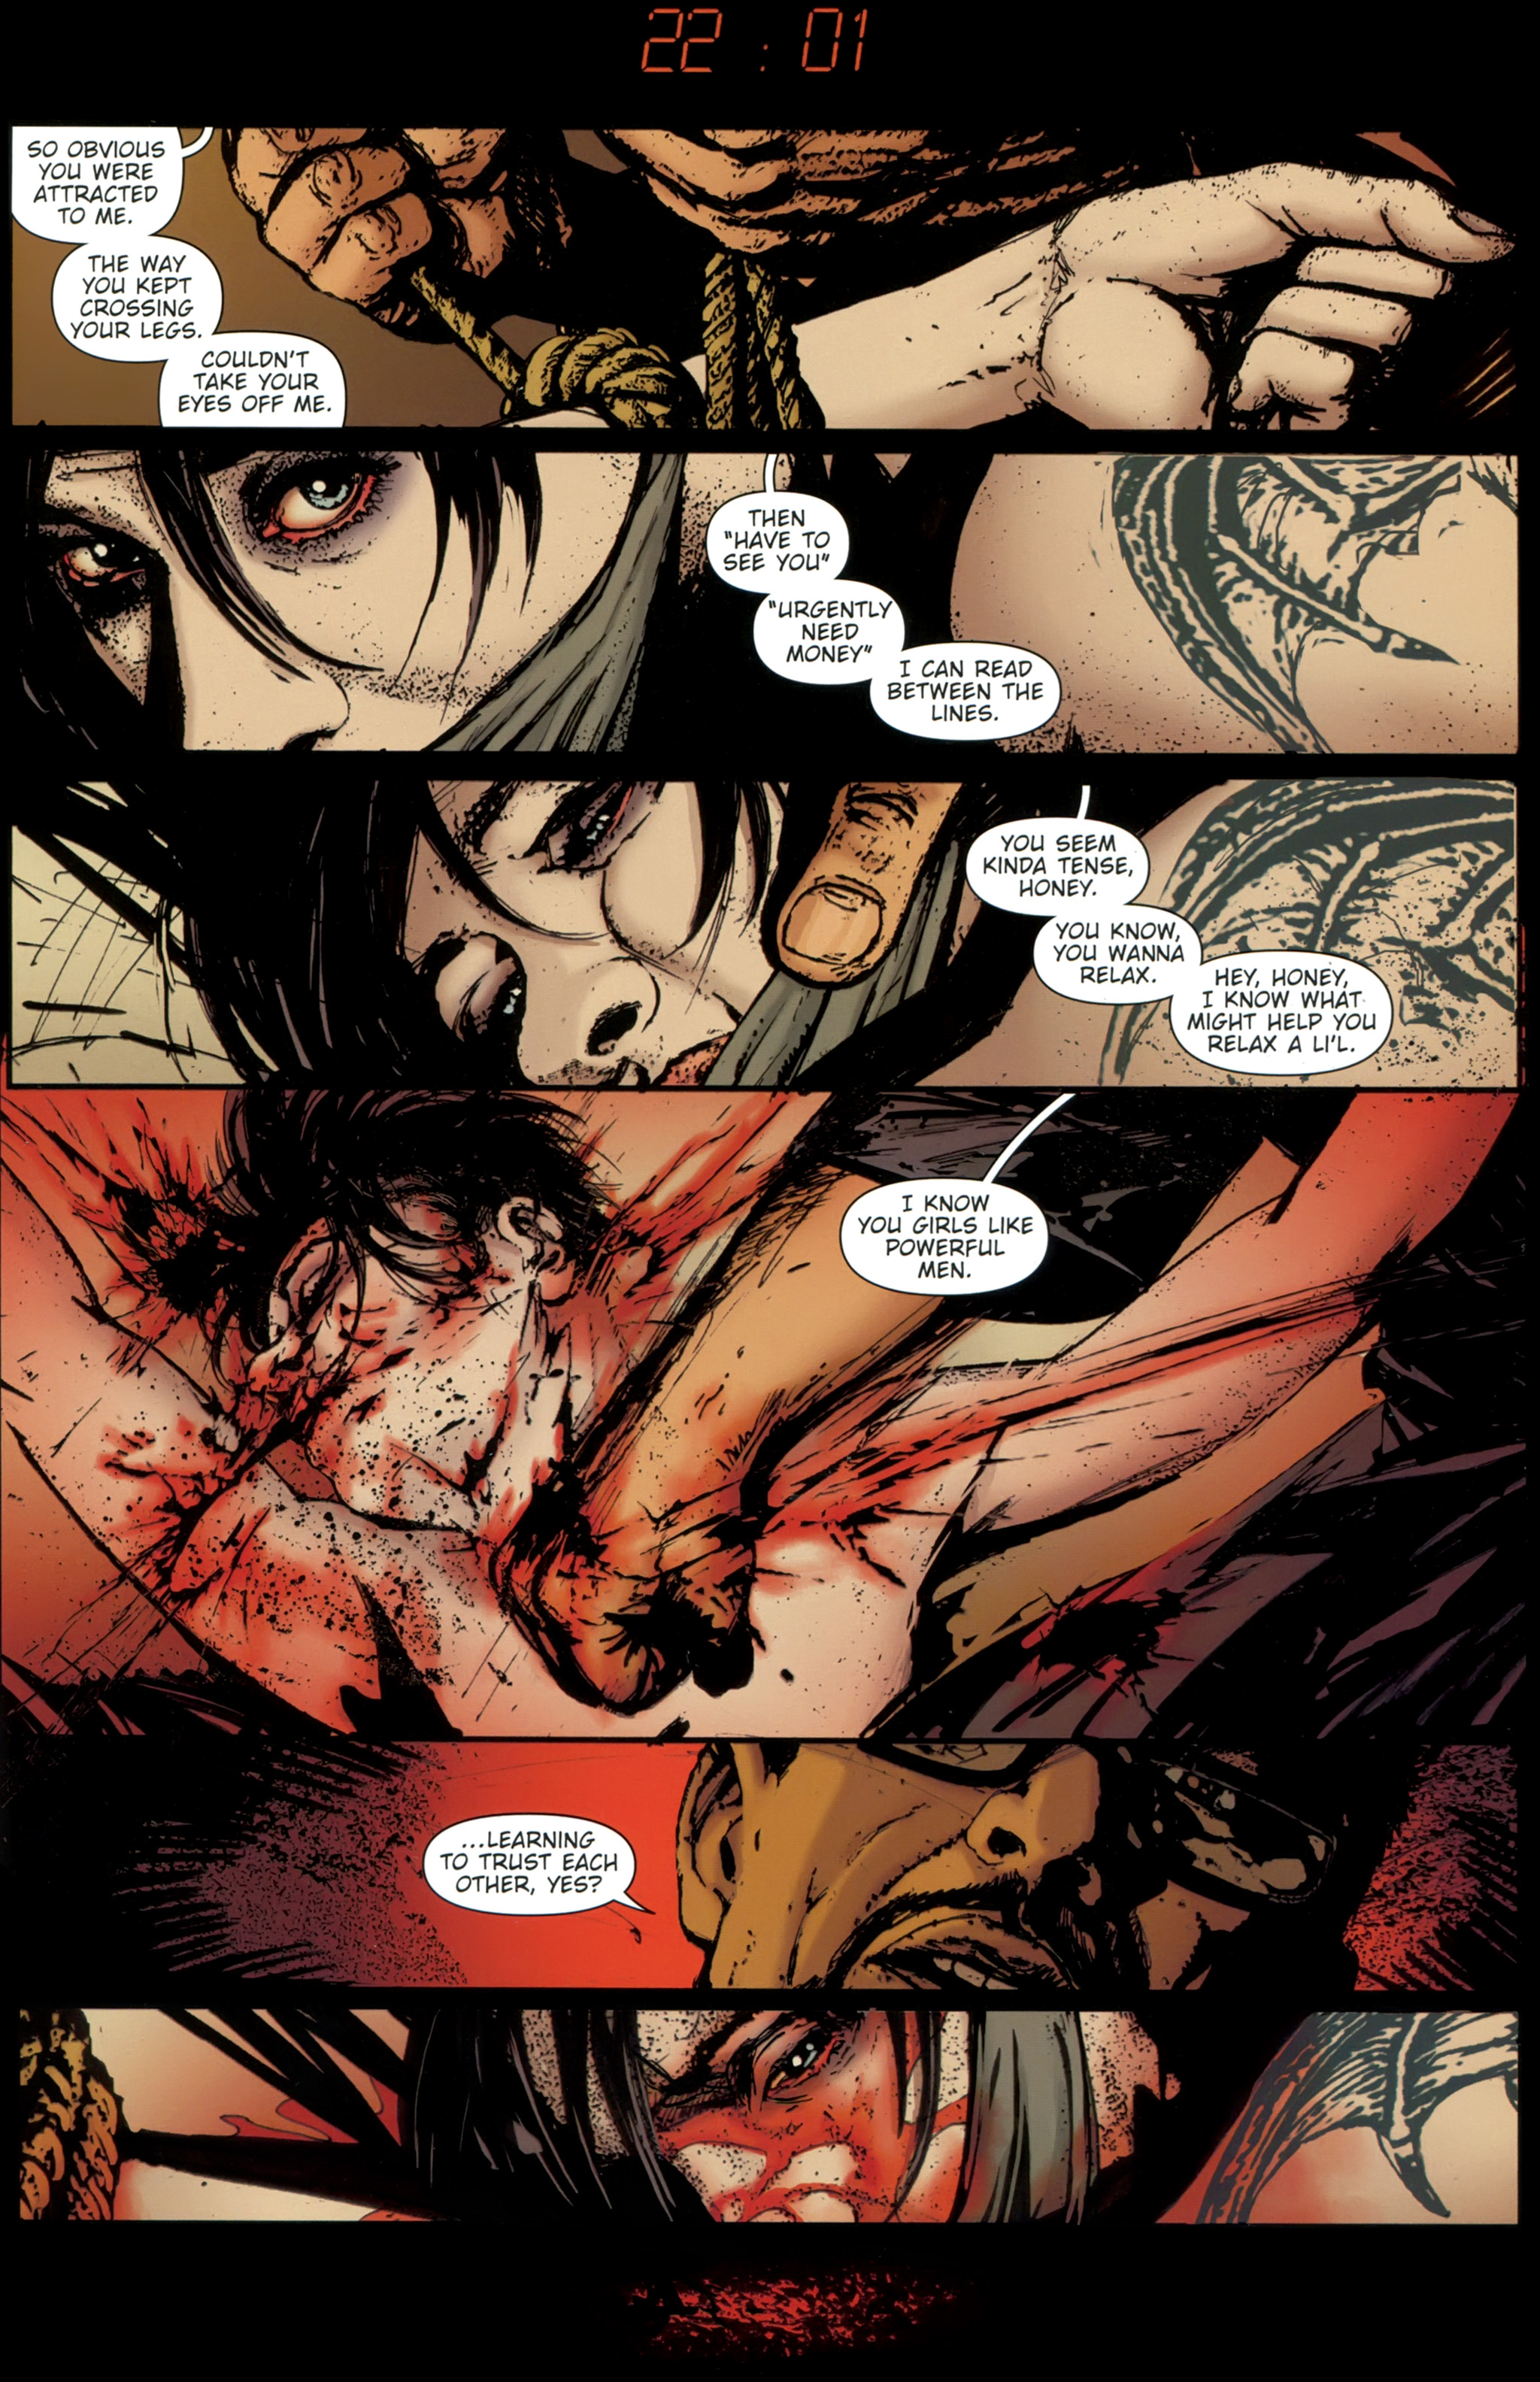 Read online The Girl With the Dragon Tattoo comic -  Issue # TPB 1 - 120